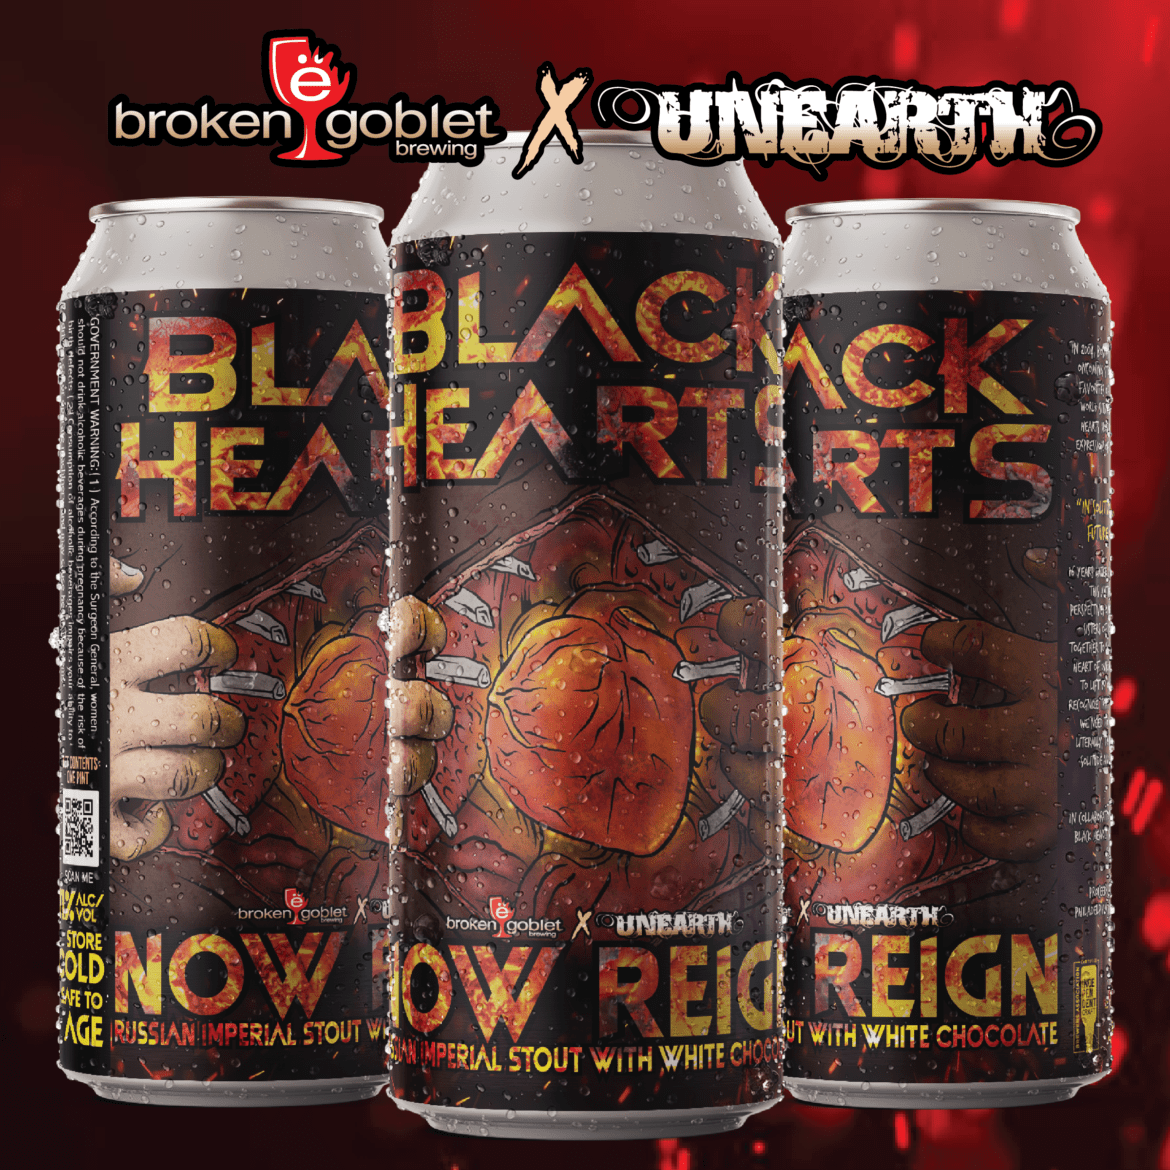 broken-goblet-and-unearth-collab-on-black-hearts-now-reign-beer,-proceeds-to-benefit-aclu